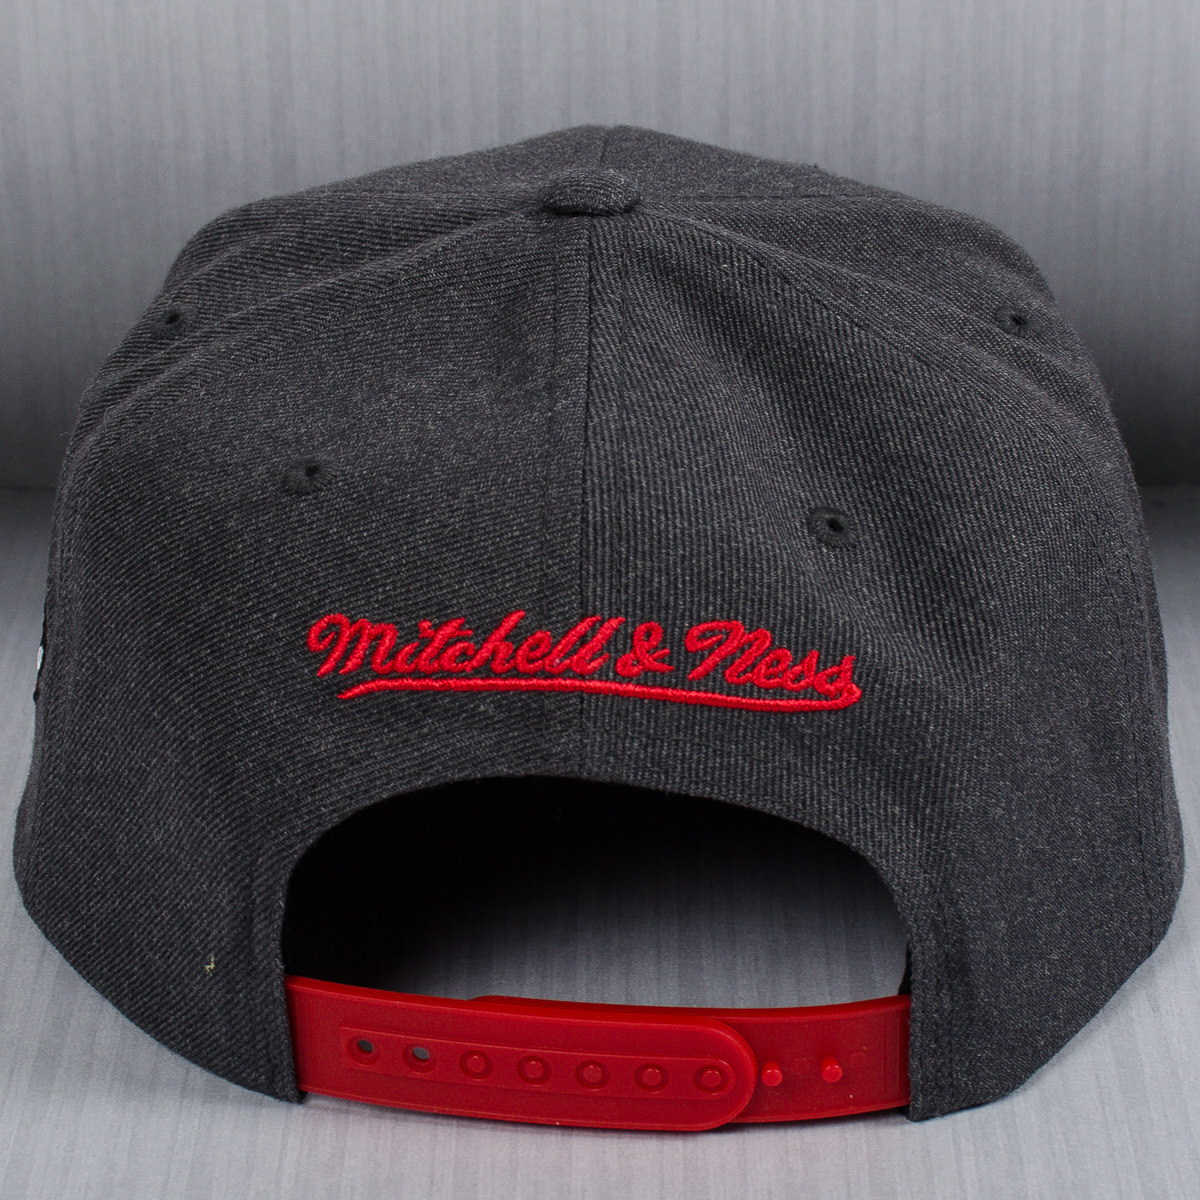 finest selection b24a1 71cf7 Mitchell   Ness NBA Chicago Bulls Insider Reflective Snapback Cap